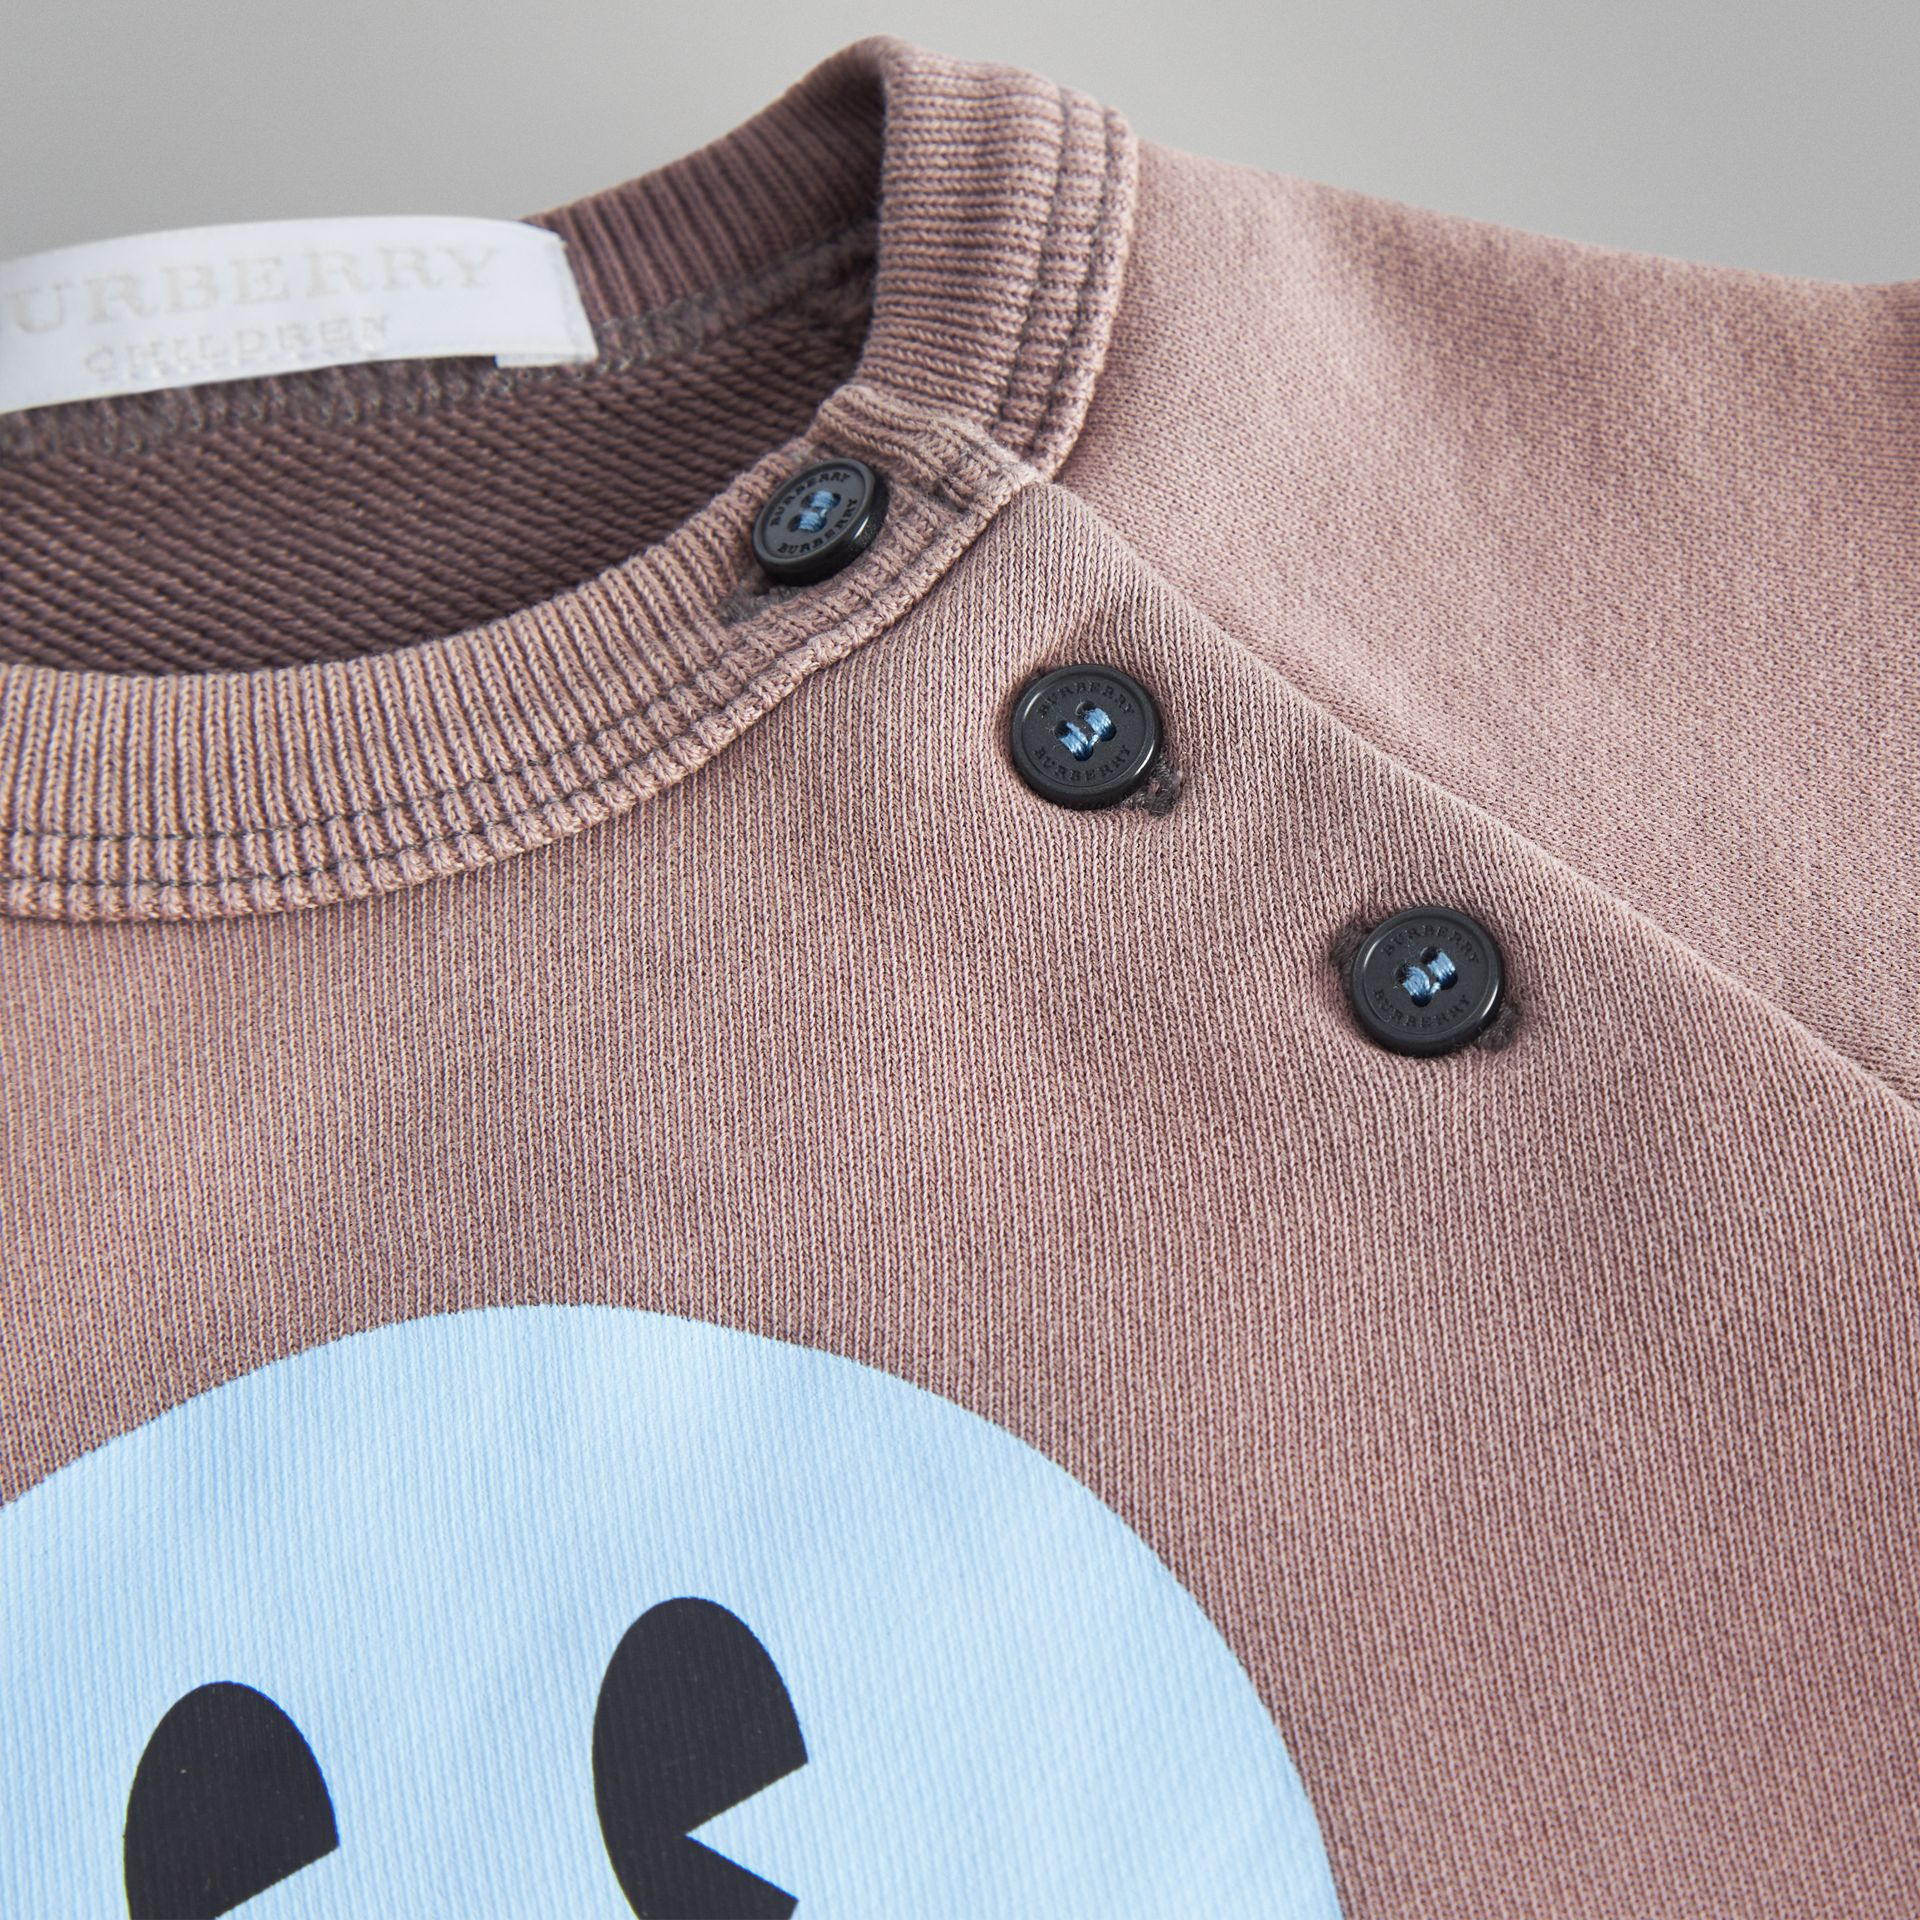 Smiley Face Print Cotton Sweatshirt in Mauve - Children | Burberry United Kingdom - gallery image 1